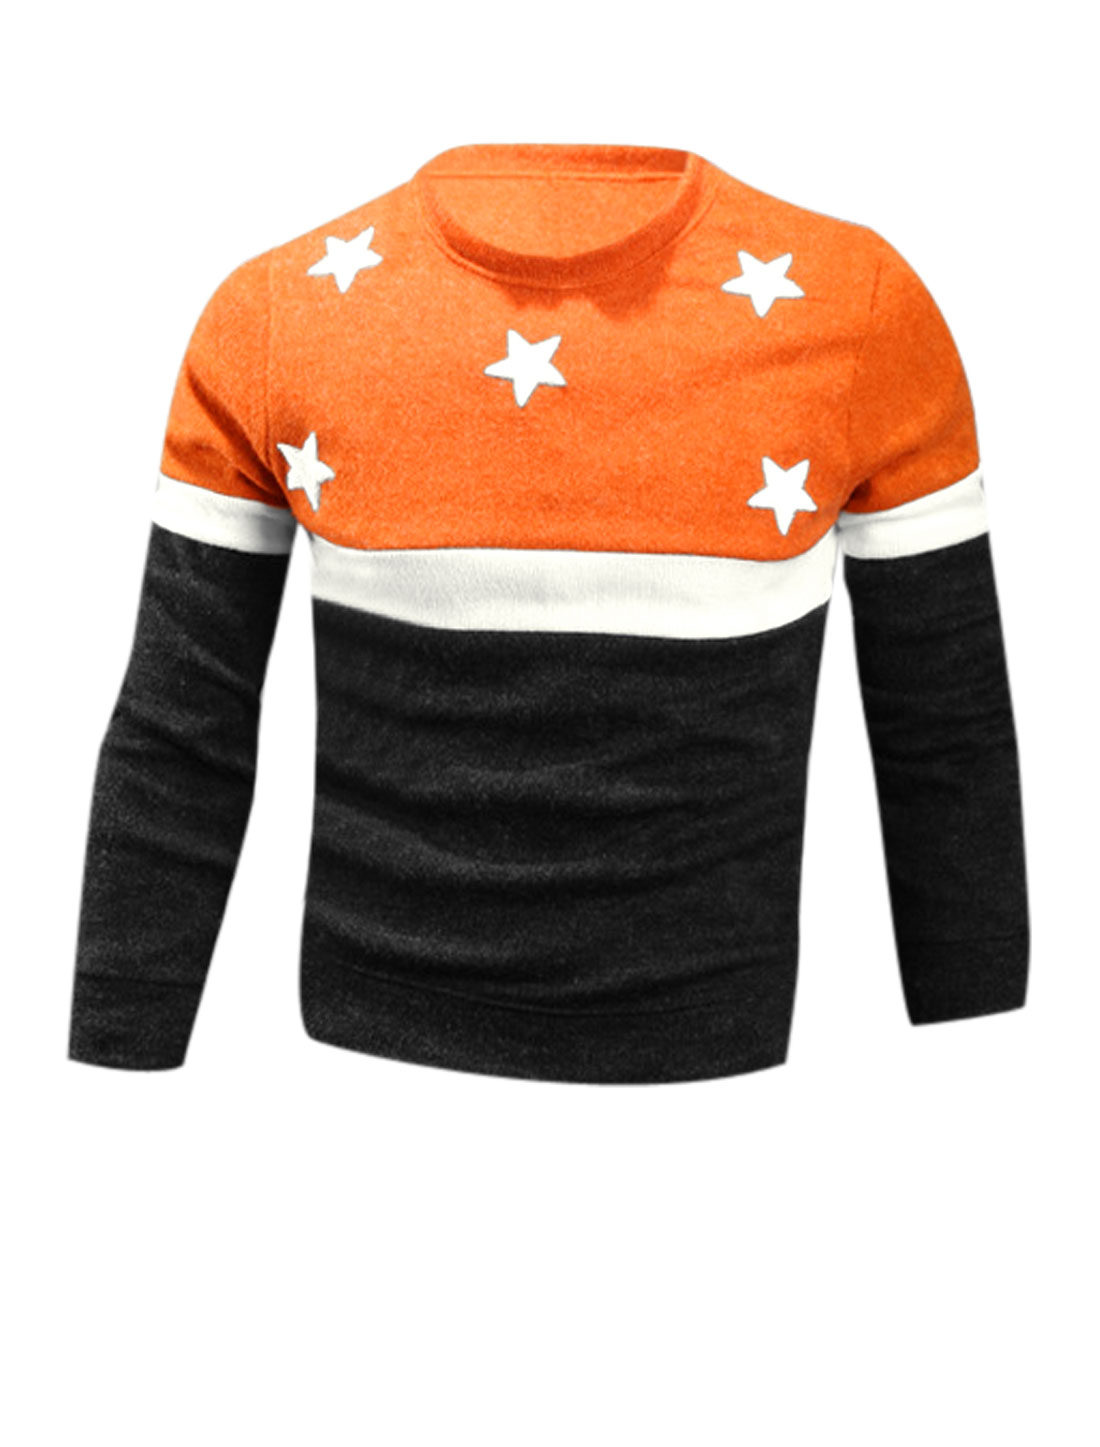 Men Charcoal Orange Round Neck Stars Applique Color Bock Full Sleeves Knit Shirt M